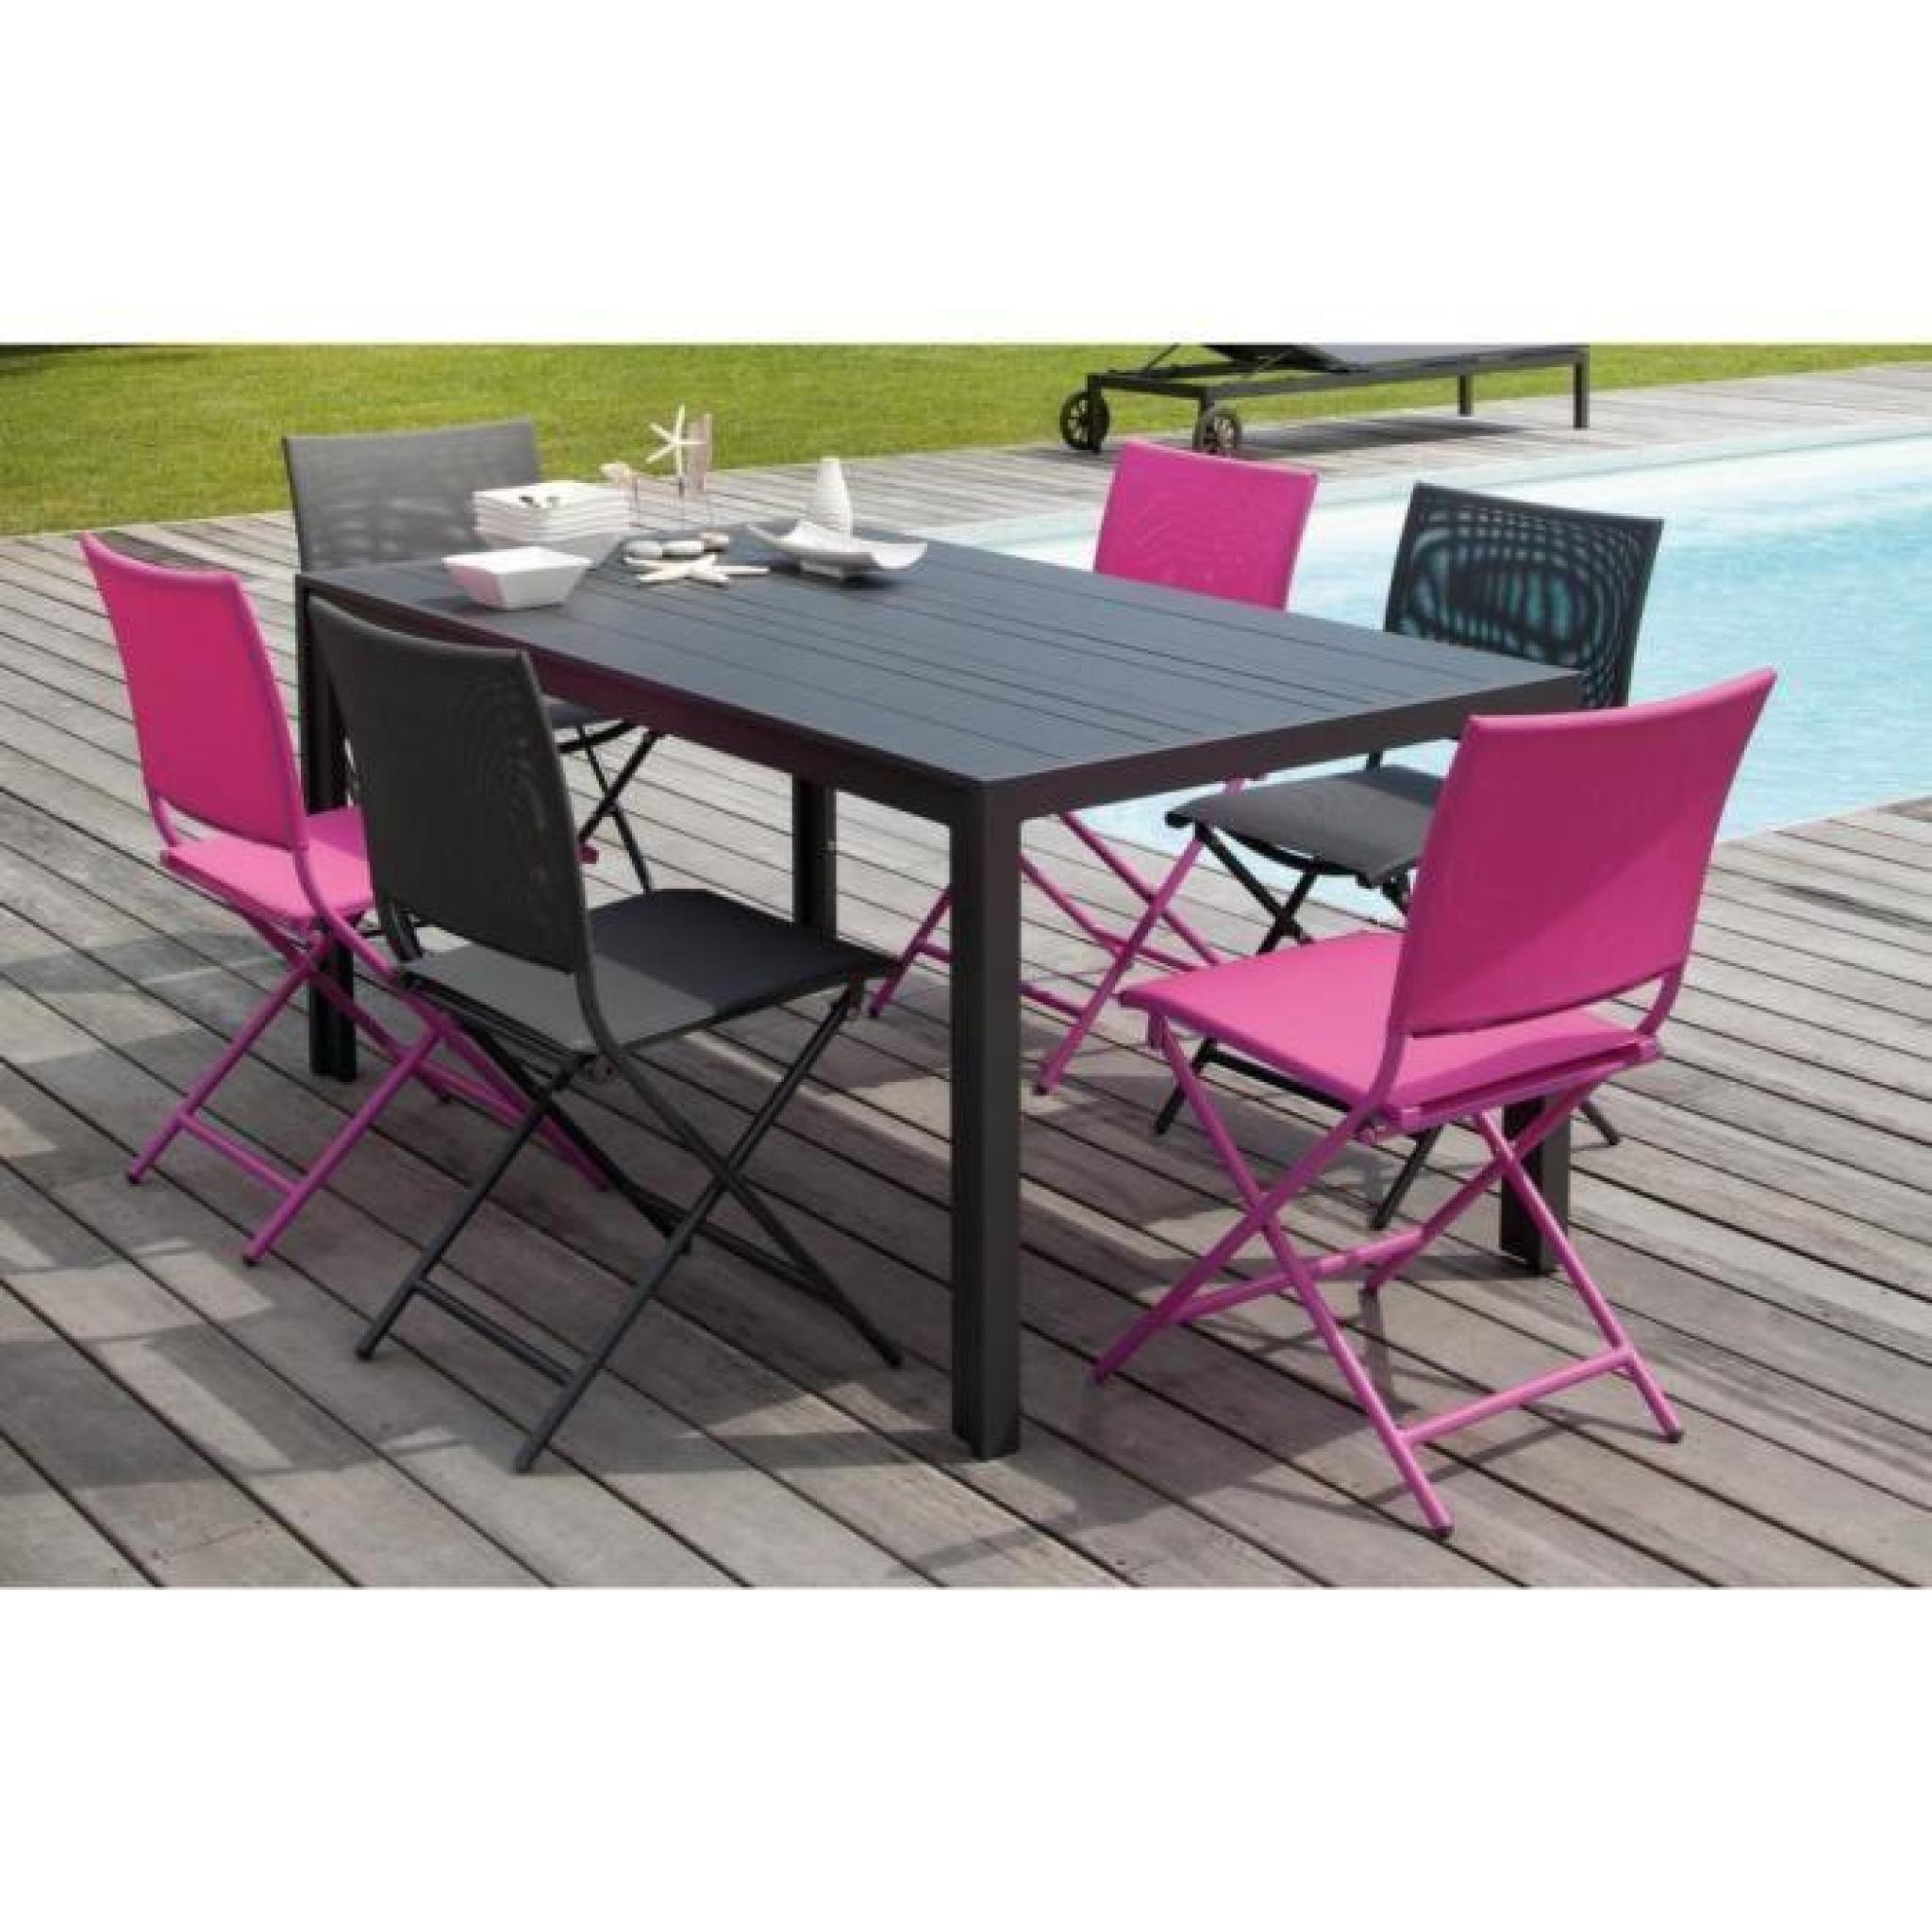 Salon cara bes 1 table 6 chaises pliantes framboise for Table 6 chaises pas cher